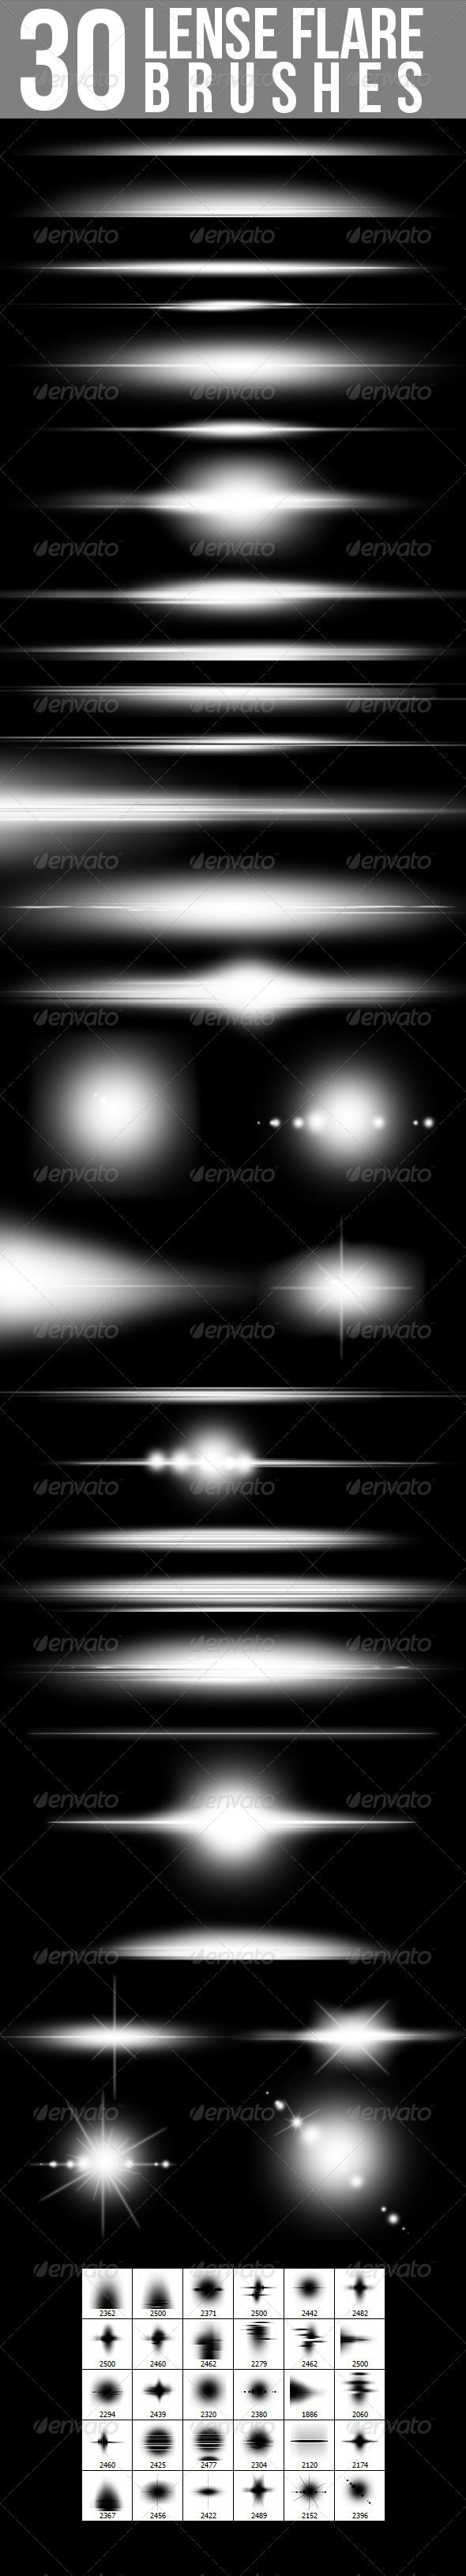 30 Lense Flare Brushes     Get it here:  http://graphicriver.net/item/30-lense-flare-brushes/4177668/?ref=nada-images